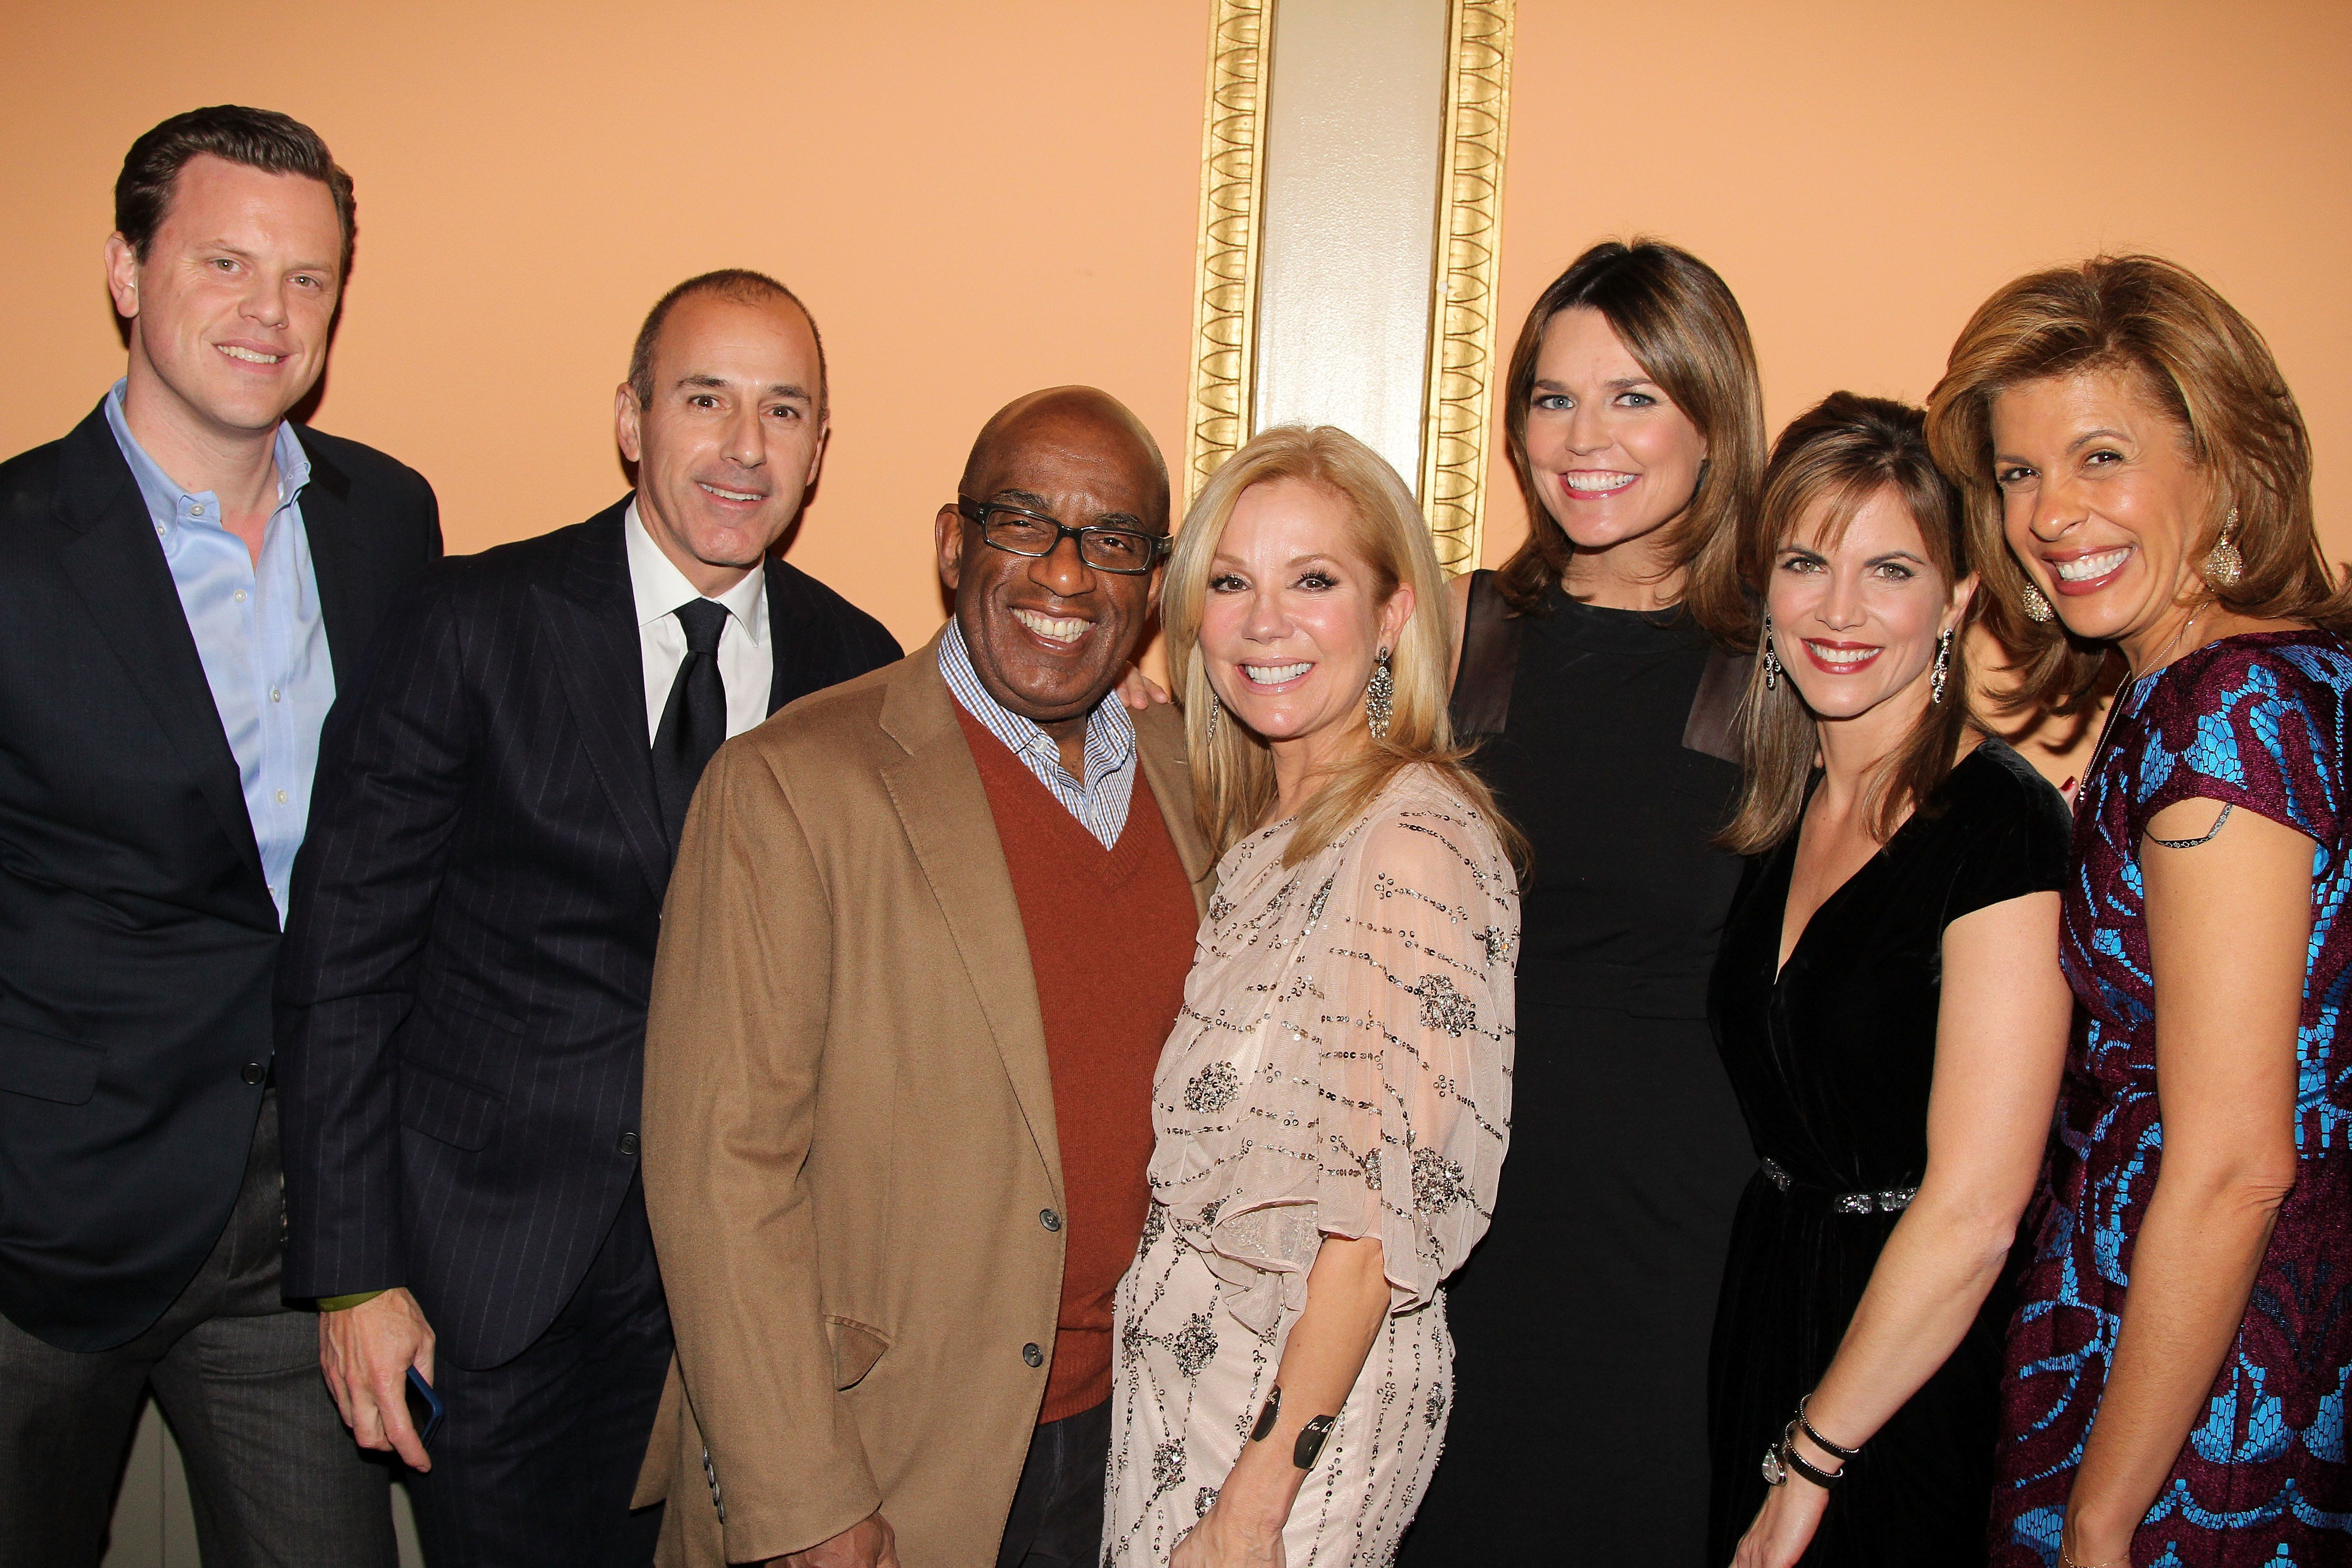 NEW YORK, NY - NOVEMBER 15:  (L-R) Willie Geist, Matt Lauer, Al Roker, Kathie Lee Gifford, Savannah Guthrie,Natalie Morales and Hoda Kotb attend the opening night of 'Scandalous' on Broadway at the Neil Simon Theatre on November 15, 2012 in New York City.  (Photo by Bruce Glikas/FilmMagic)